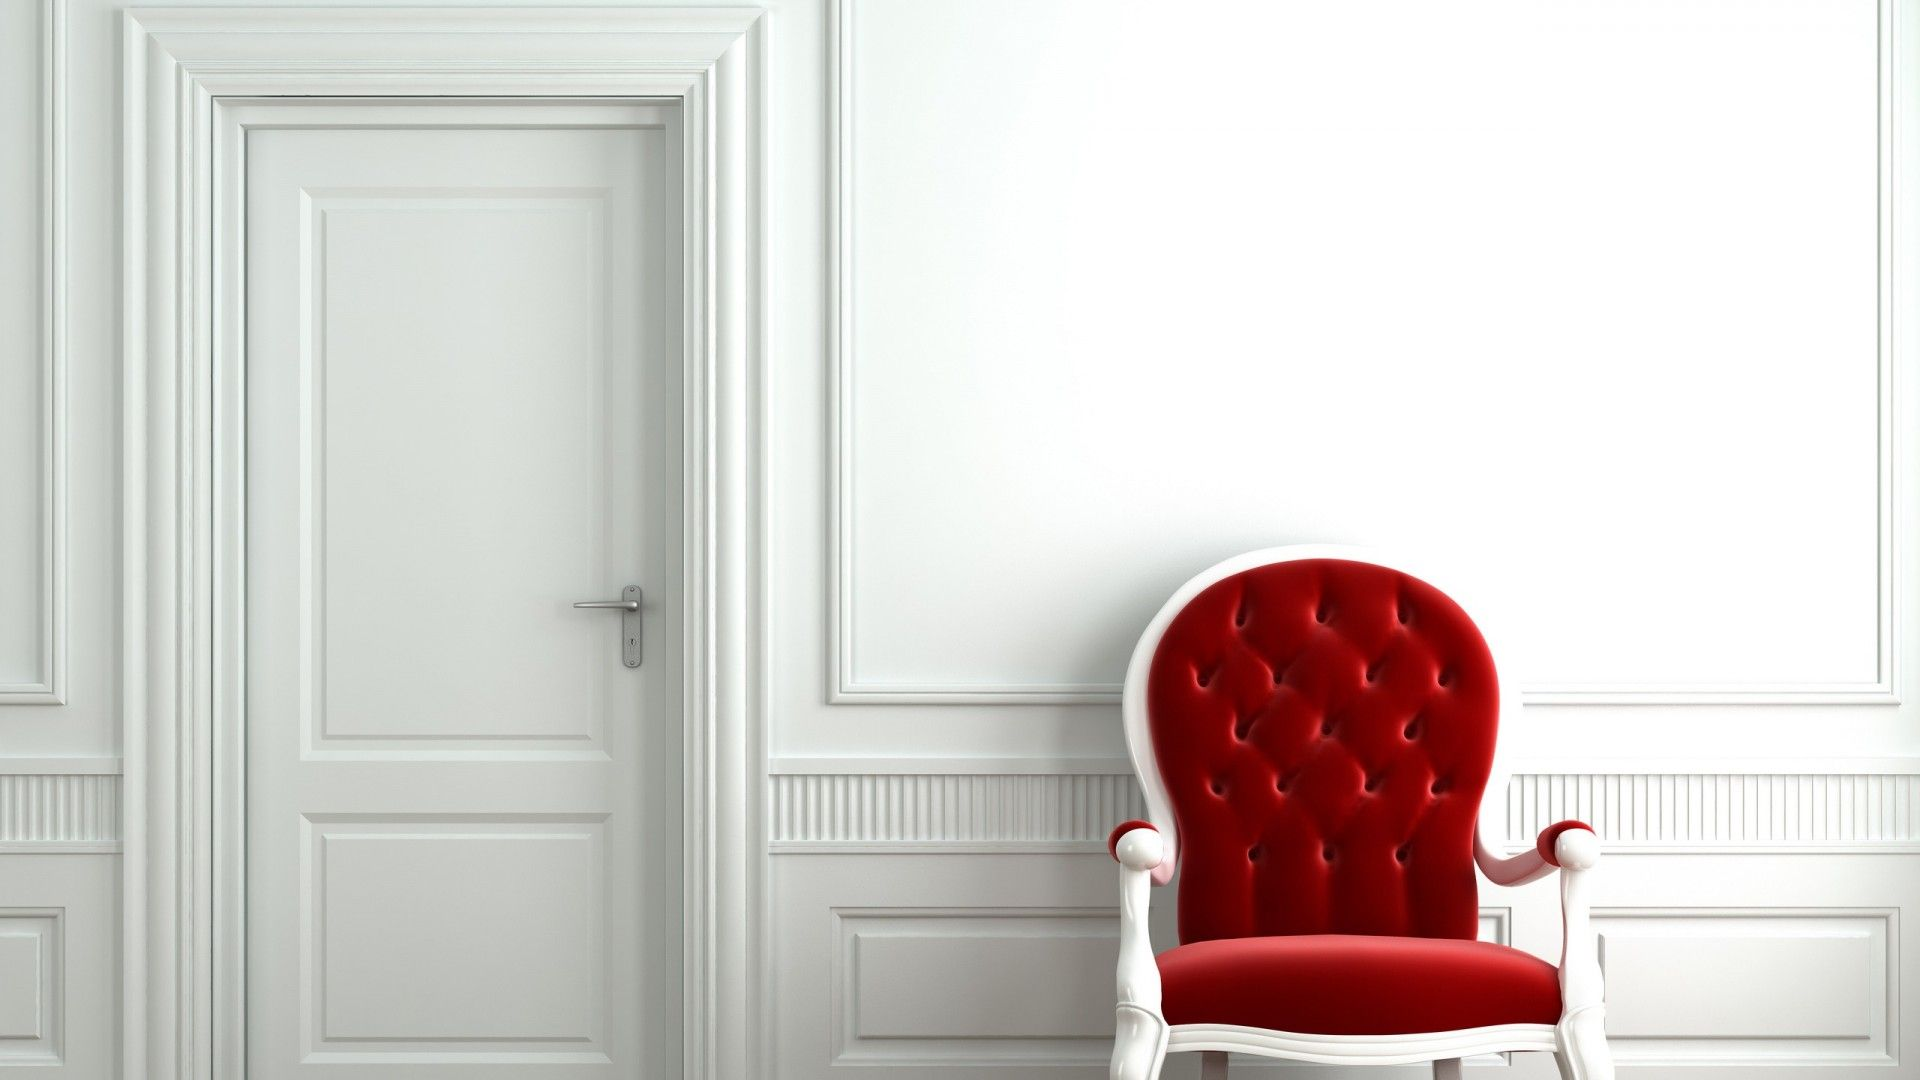 Red Chair White Room hd Wallpaperd daas Pinterest